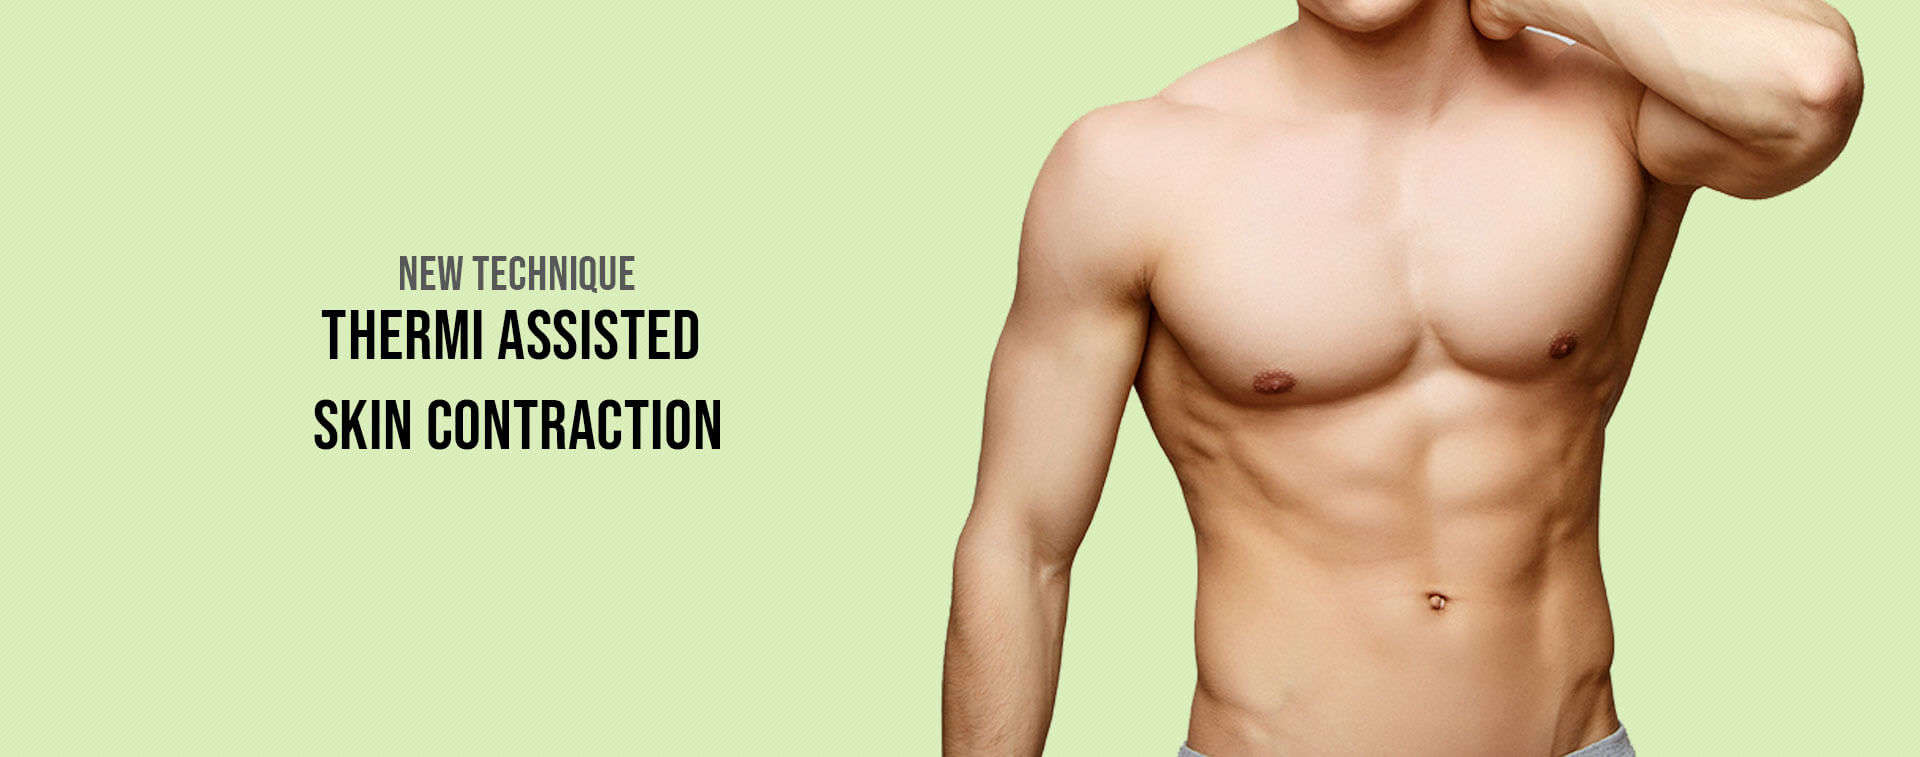 international patient for gynecomastia surgery india